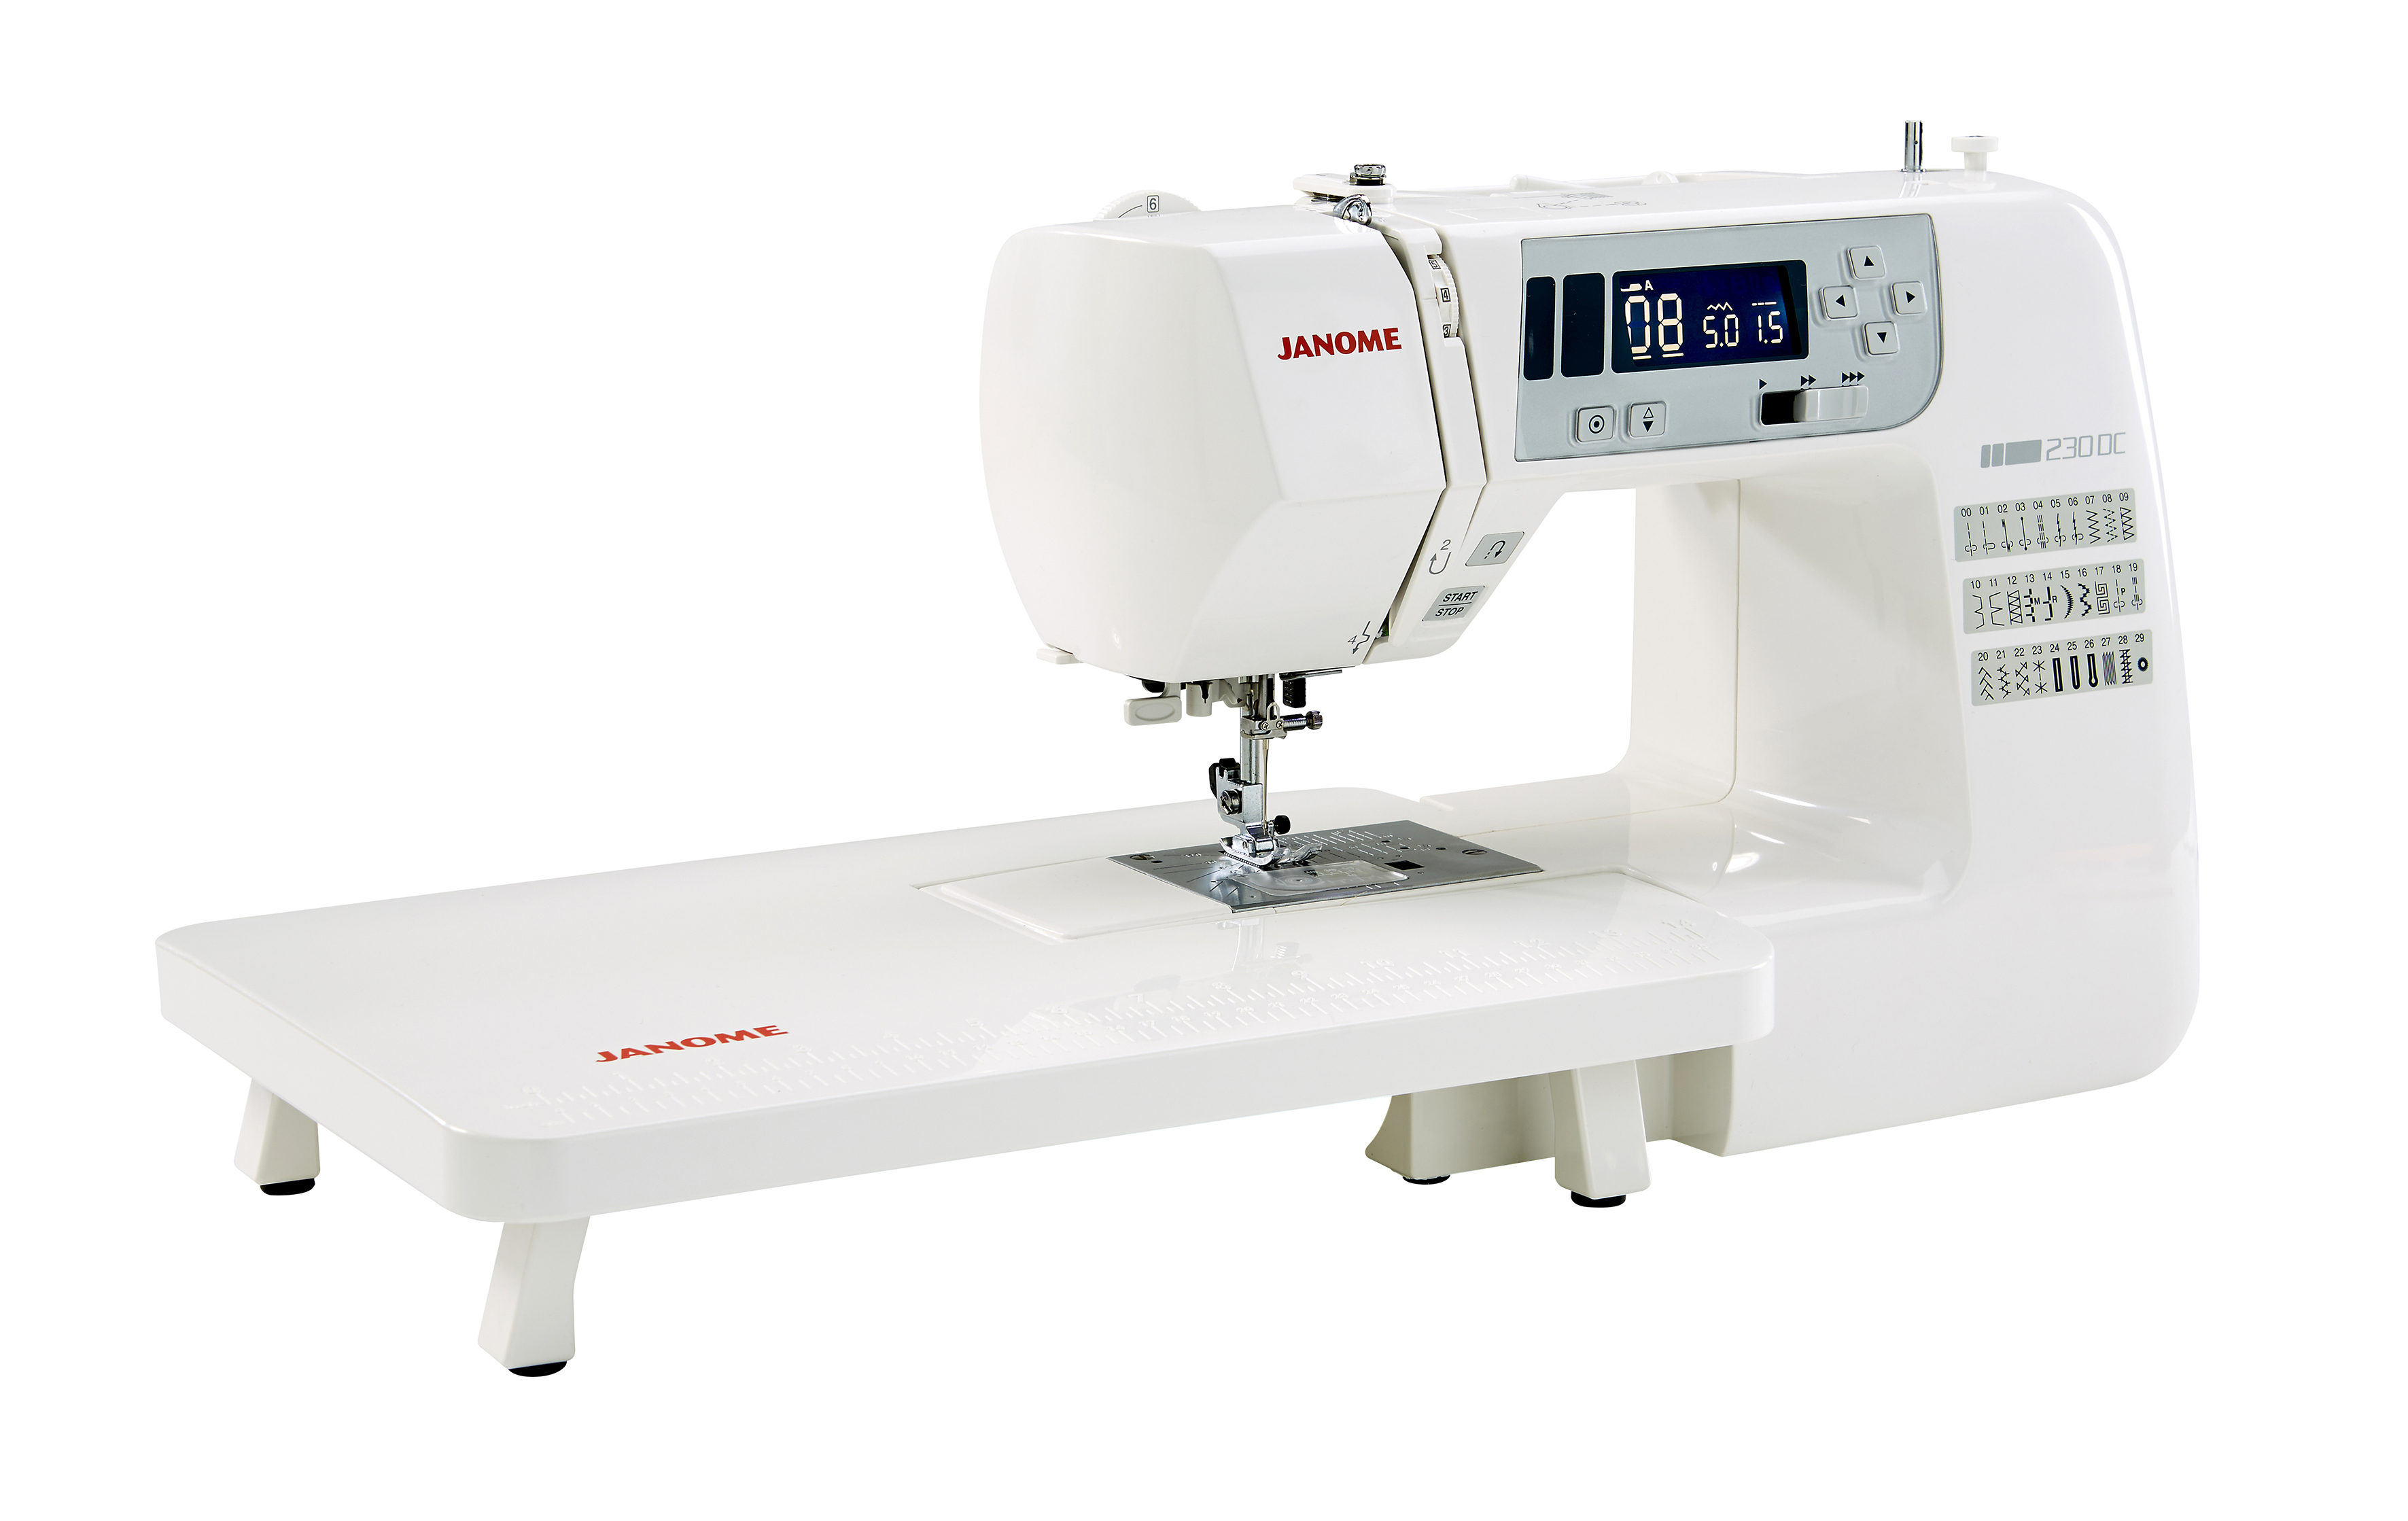 Janome 230DC 3- Franklins Group